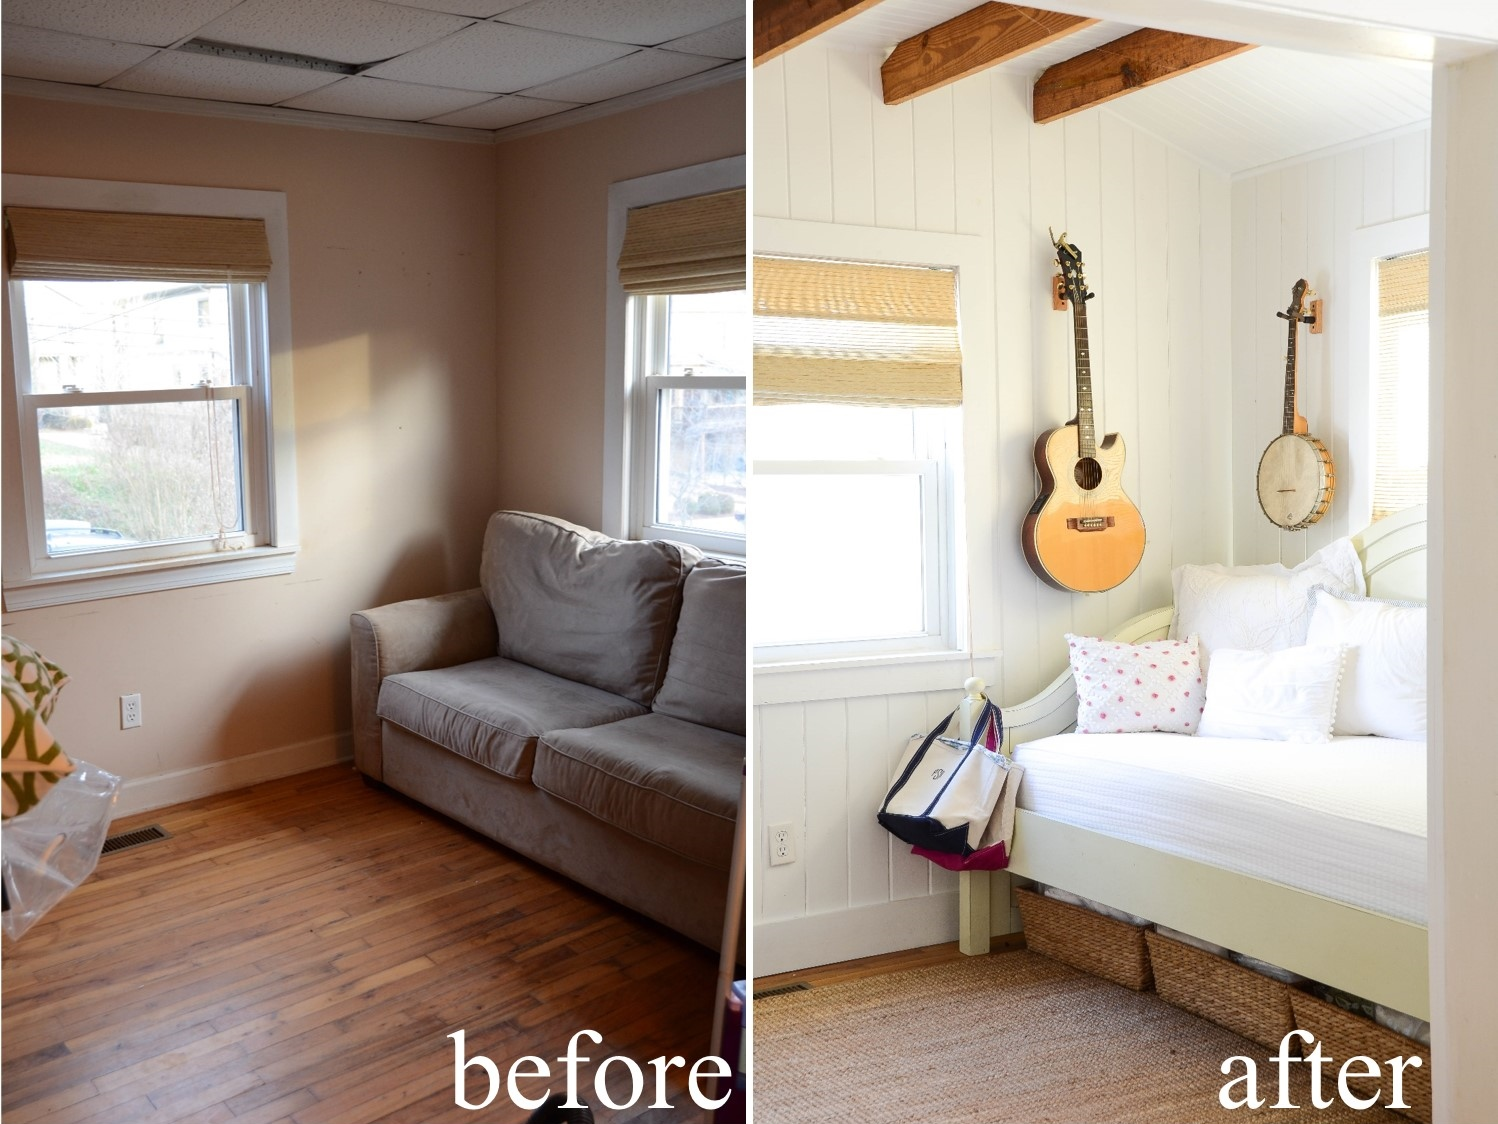 Iron twine before after small living space - Living room with small space ...